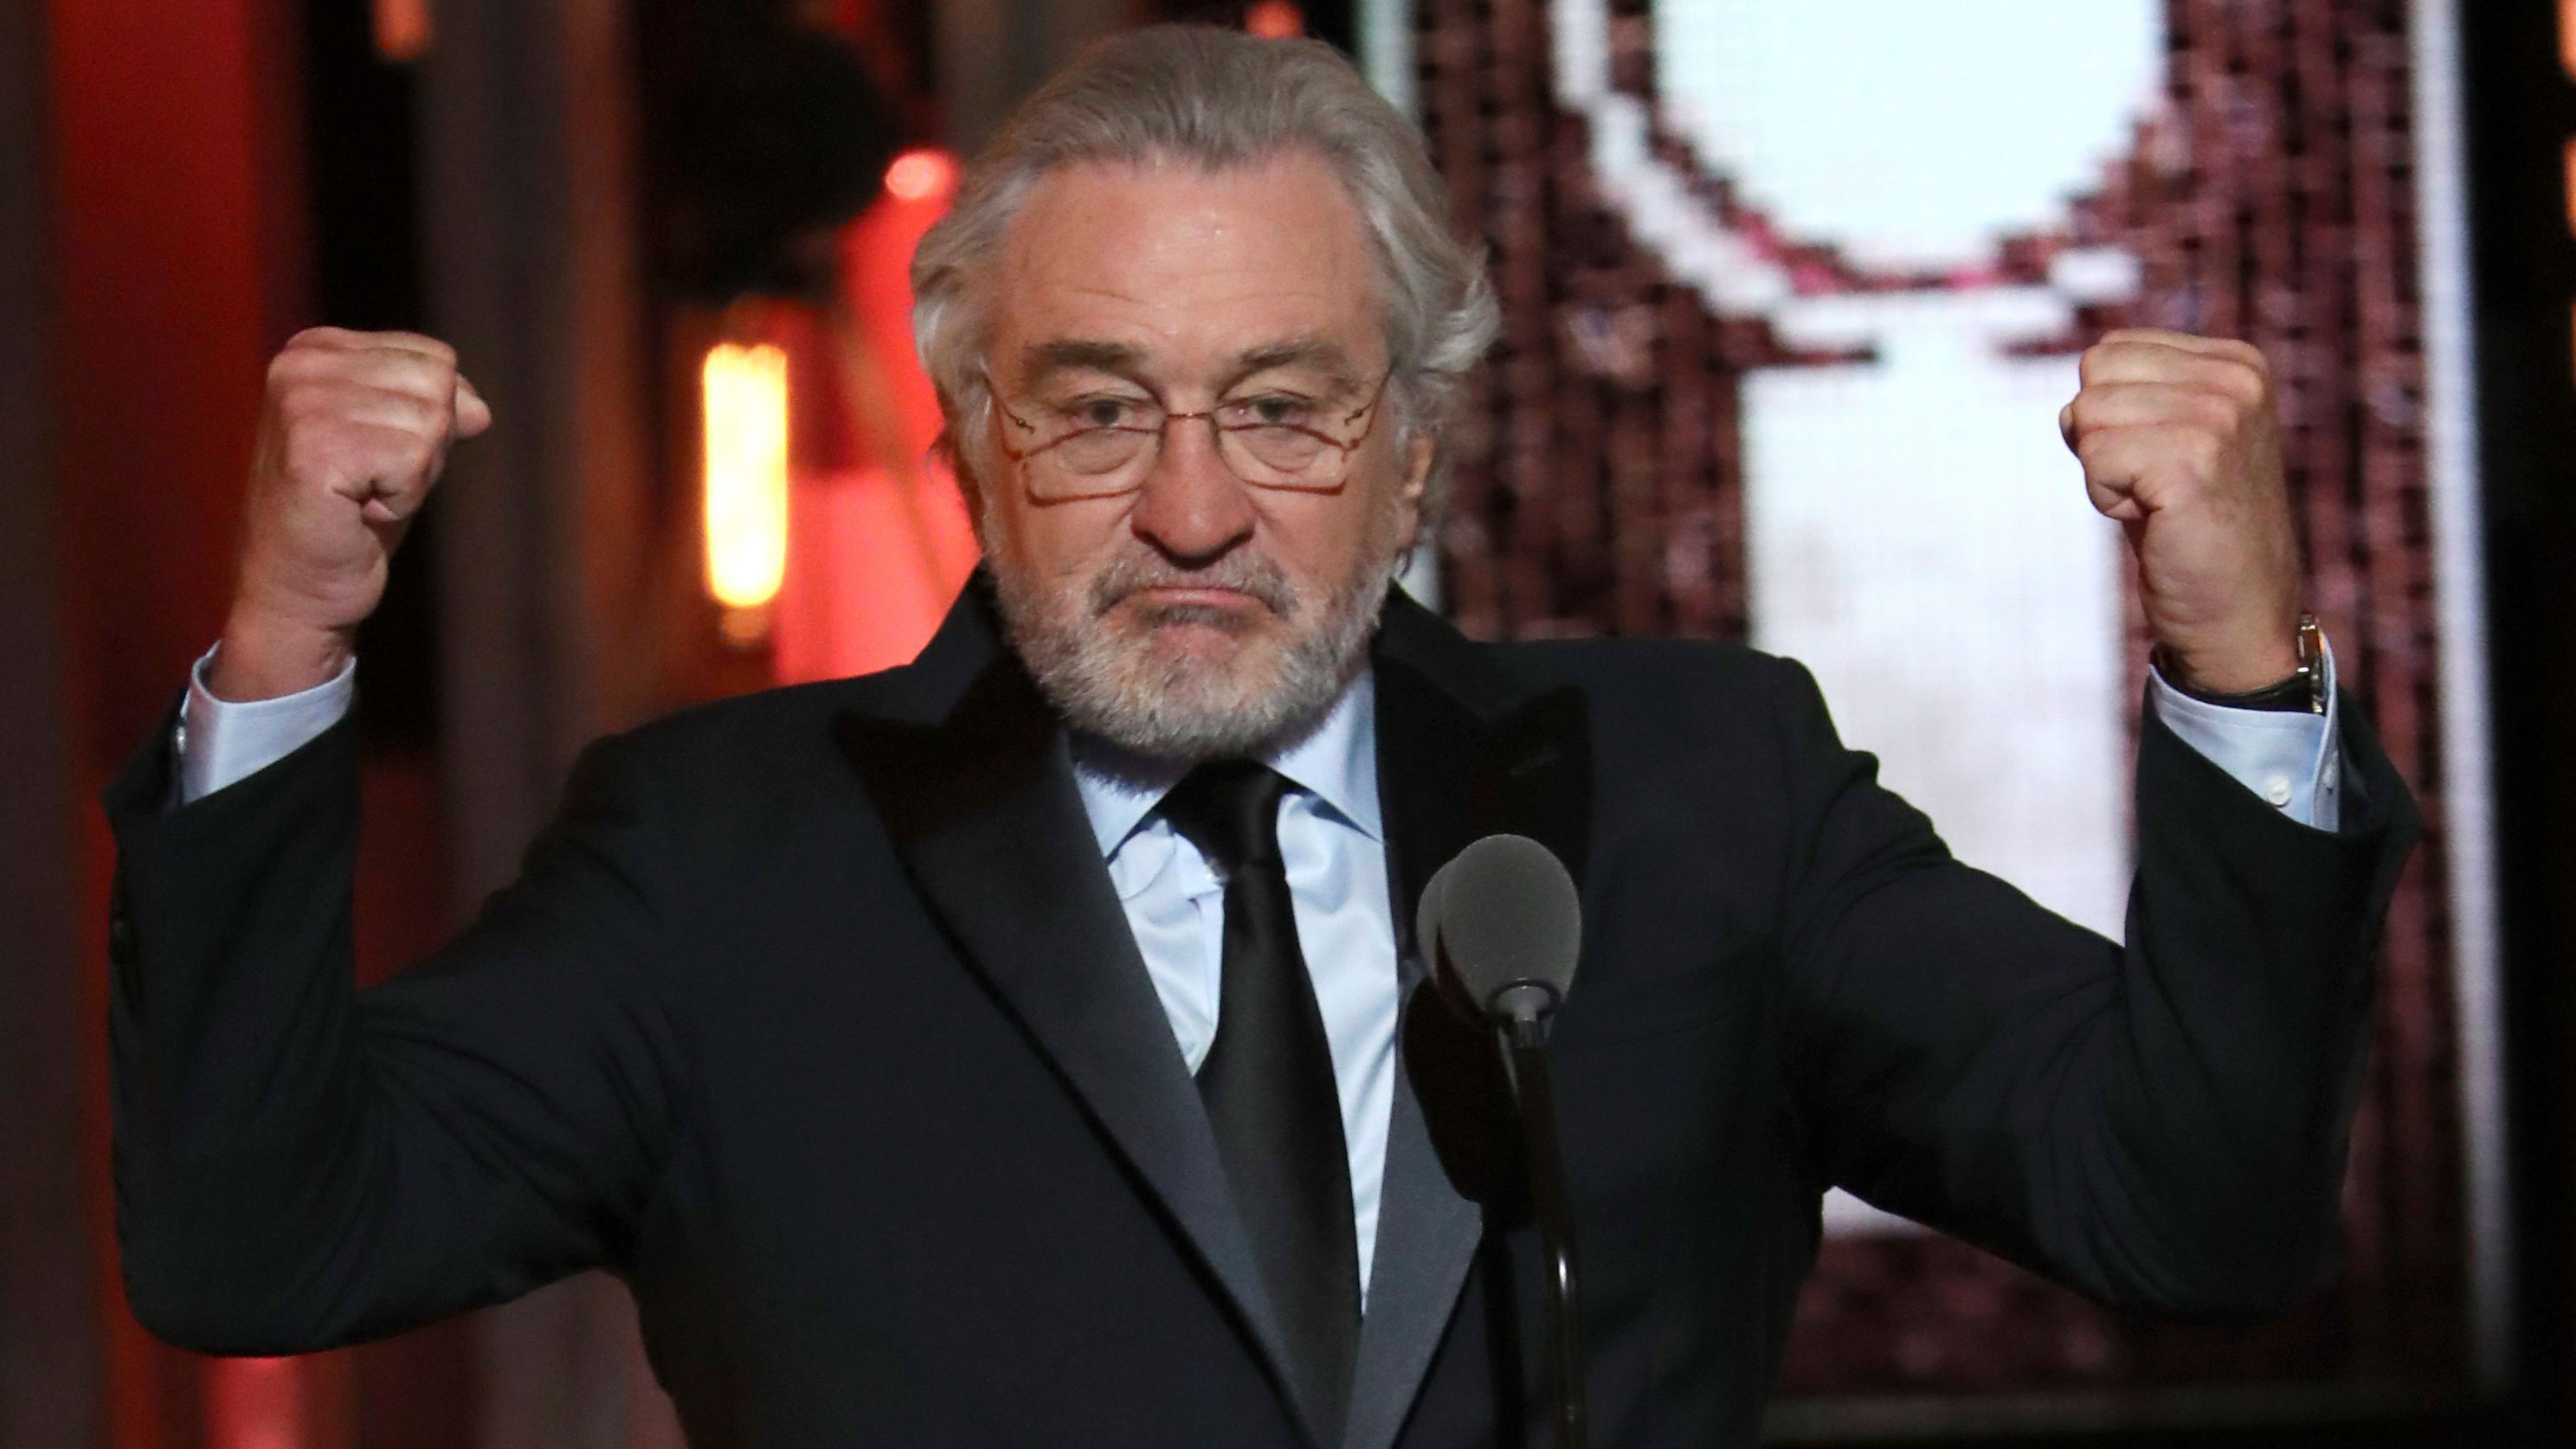 Robert De Niro Slams President at Tony Awards